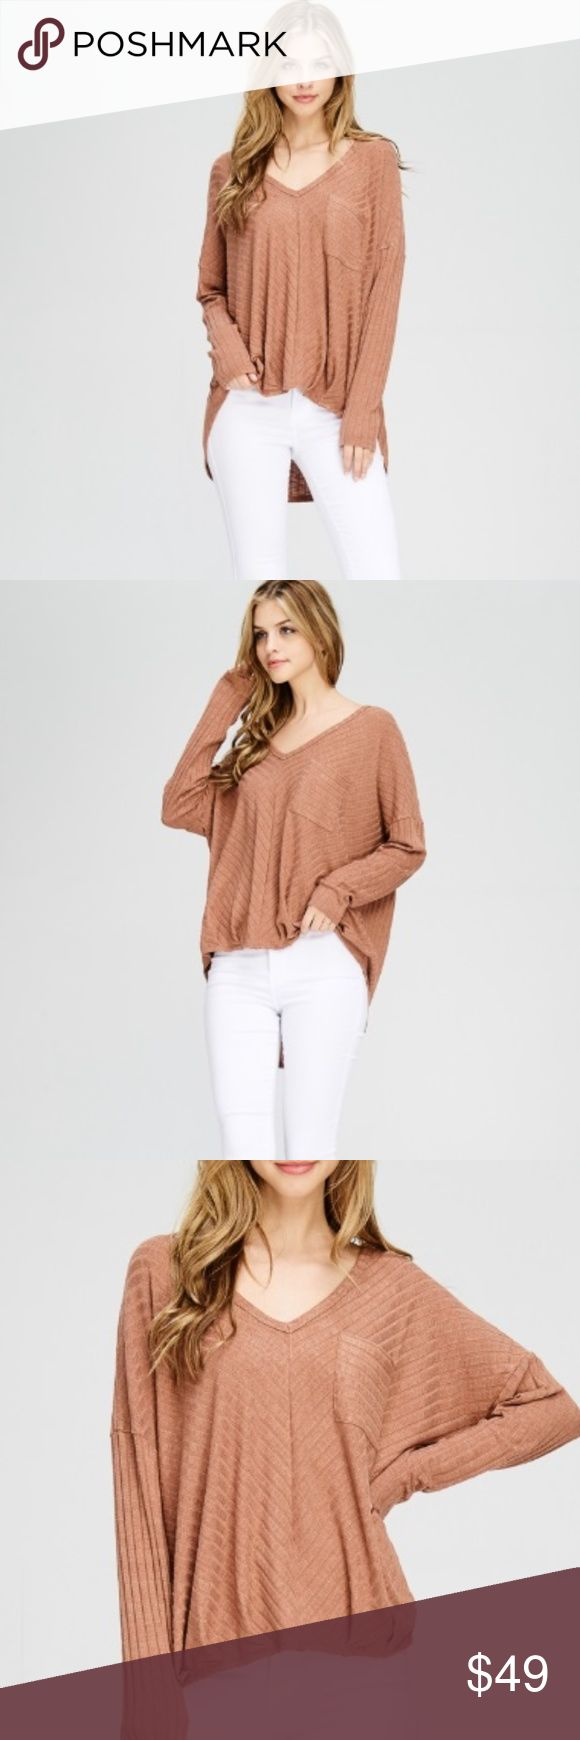 """NEW Mariah Top A lightweight ribbed knit top features V-neckline & front pocket.  * Hand wash cold * Made in Guatemala * 95% Rayon 5% Spandex  Size + Fit - Model is wearing size small - Measurements provided from a size small - Full Length:28"""" Chest:27"""" Shoulder:29"""" Sleeve length:15"""" Jubis Boutique Tops"""